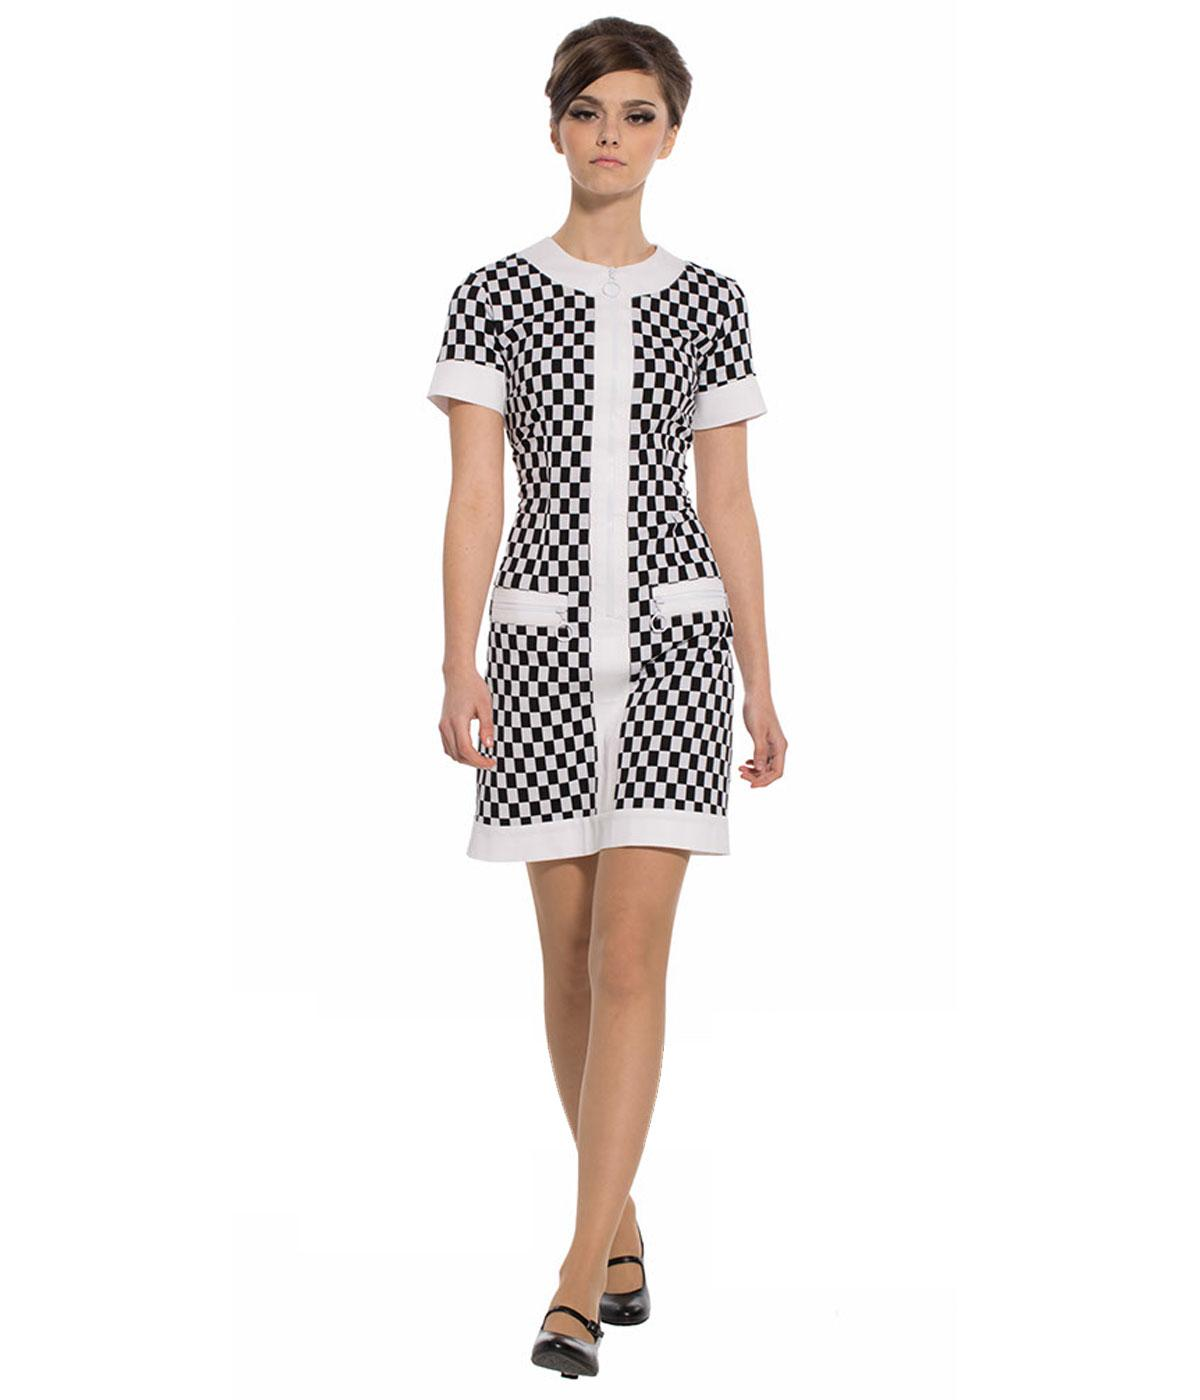 MARMALADE Retro 60s Mod Zip Front Checker Dress with Pockets